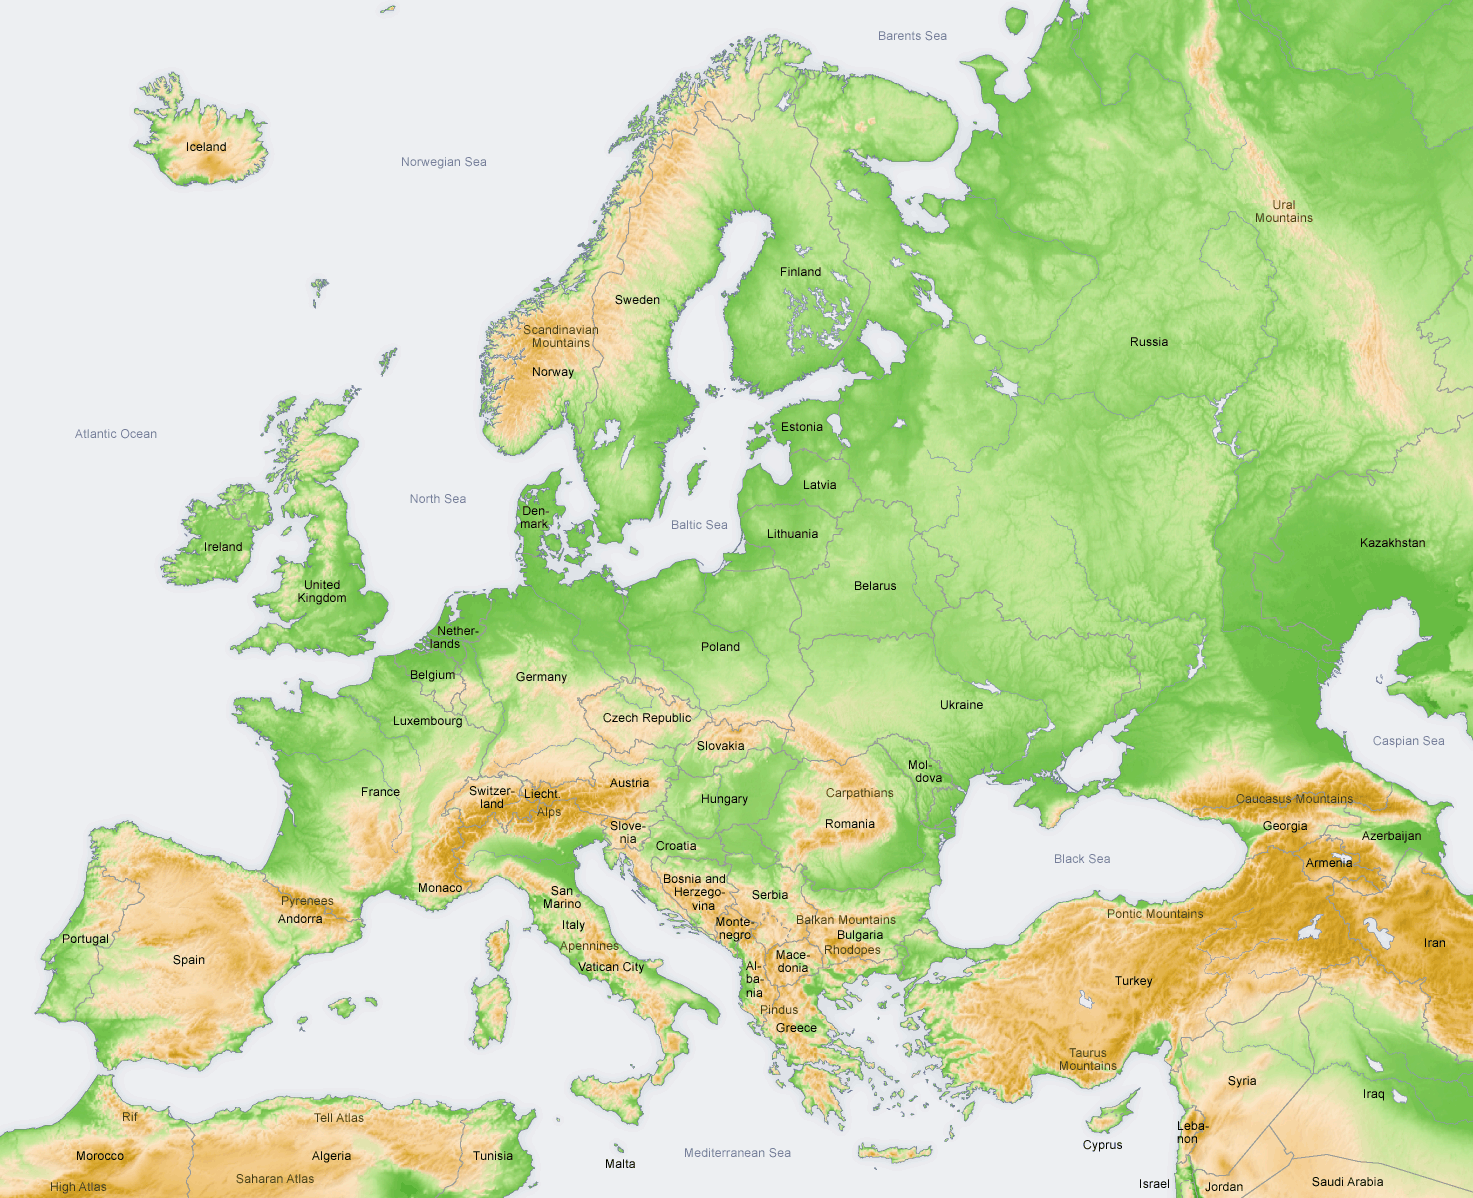 Lithuania On Europe Map.Lithuania Eastern Europe Or Not Maps Europe Europe Travel Map